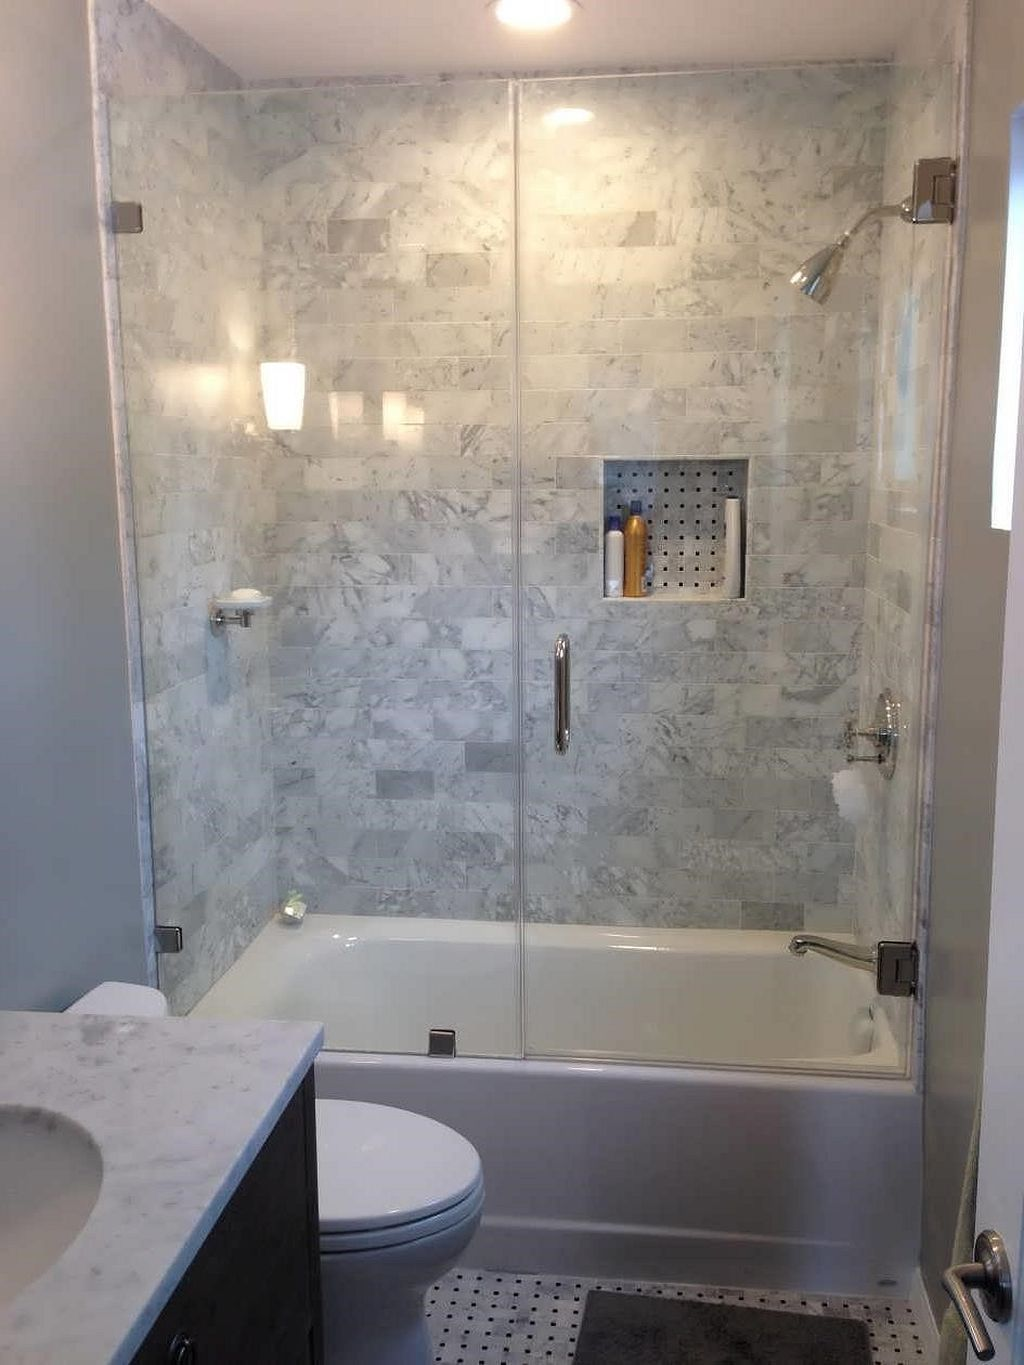 39 Magnificient Small Bathroom Tub Shower Remodeling Ideas With